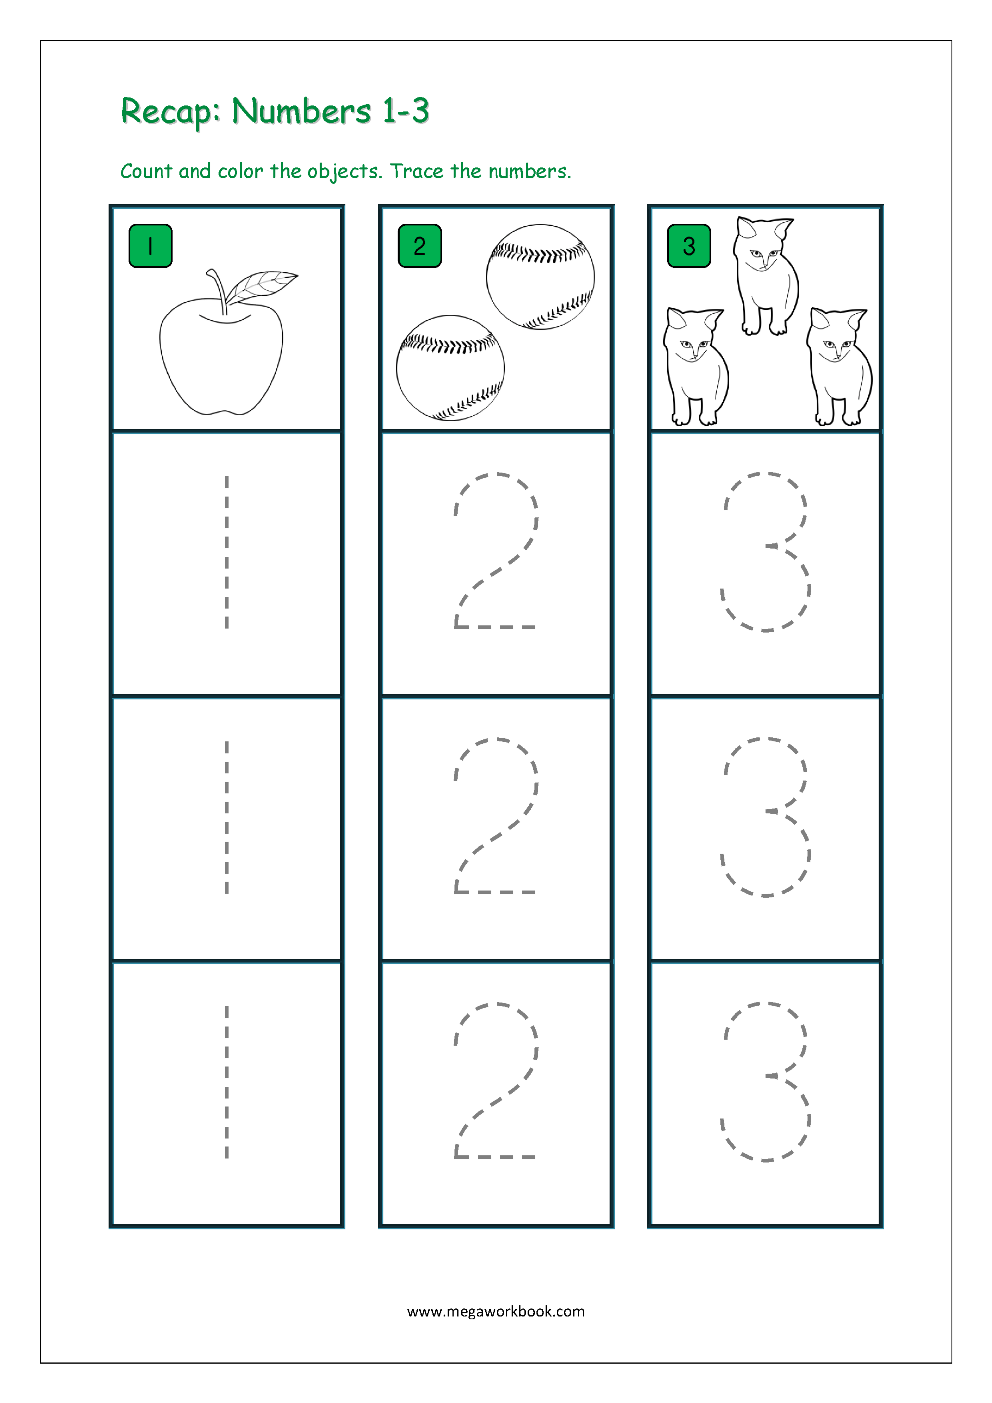 Number Tracing - Tracing Numbers - Number Tracing Worksheets